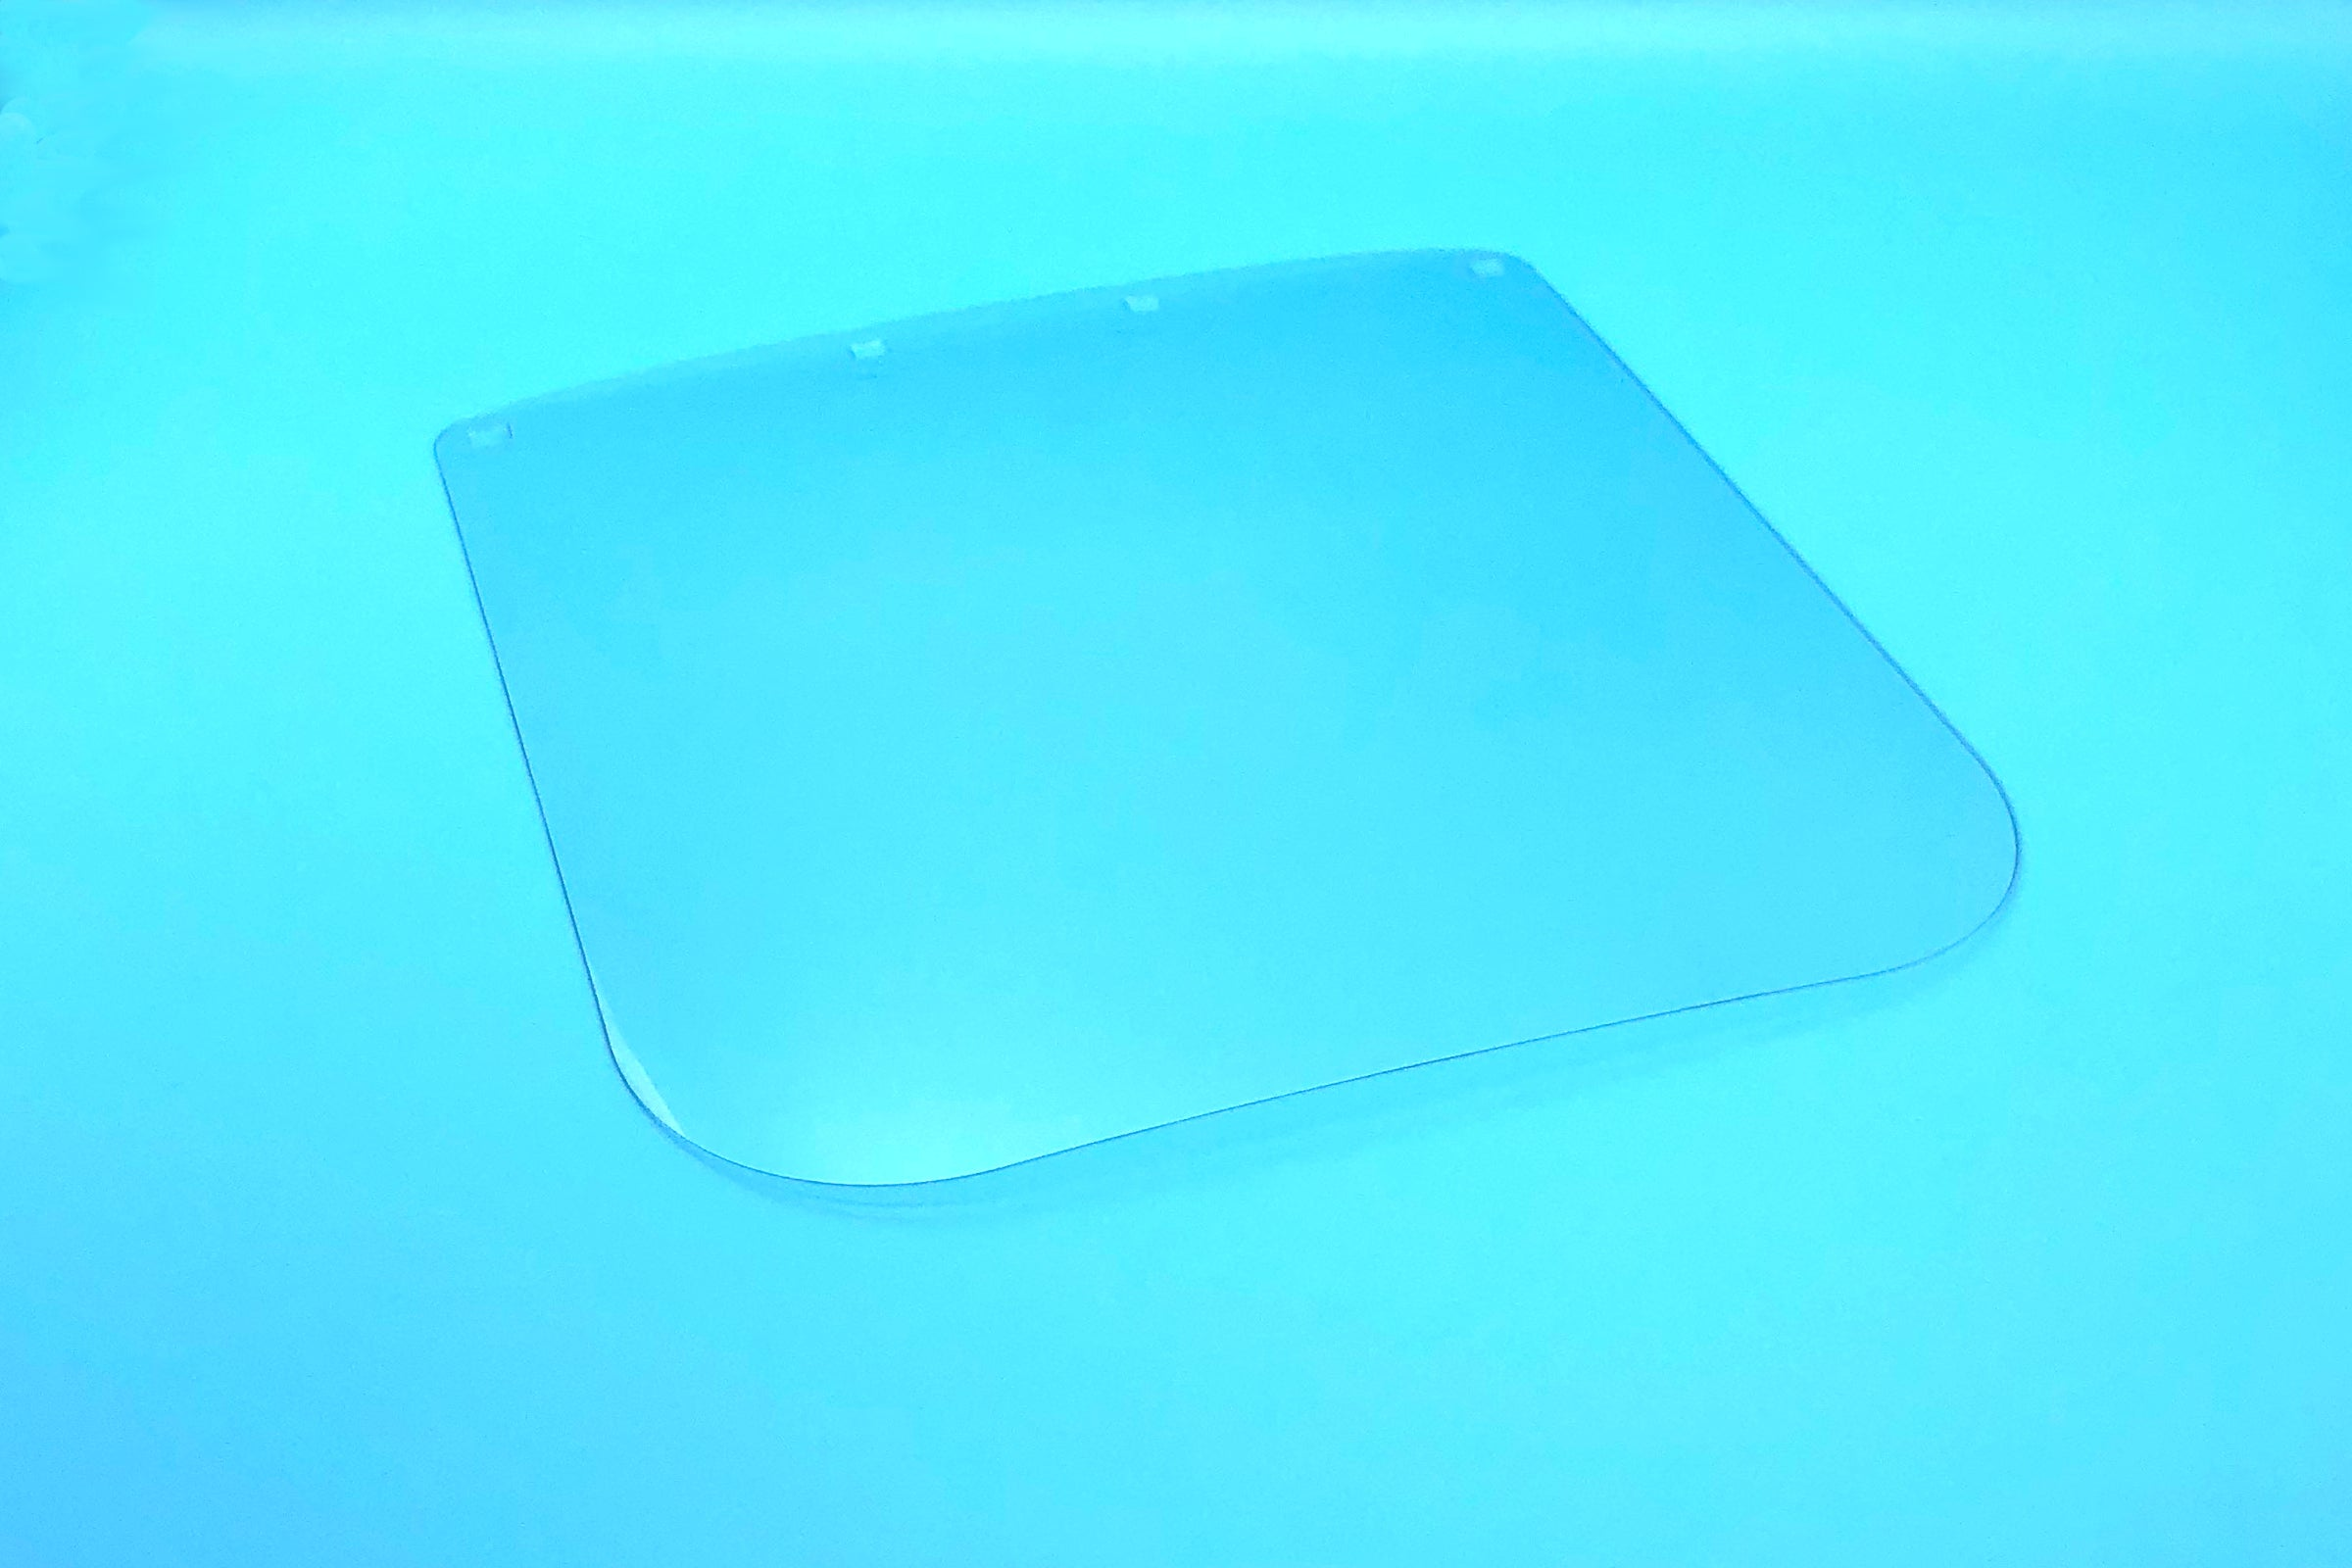 Face Shield Film, 24 cm x 24.5 cm, clear, pre-punched, protective film